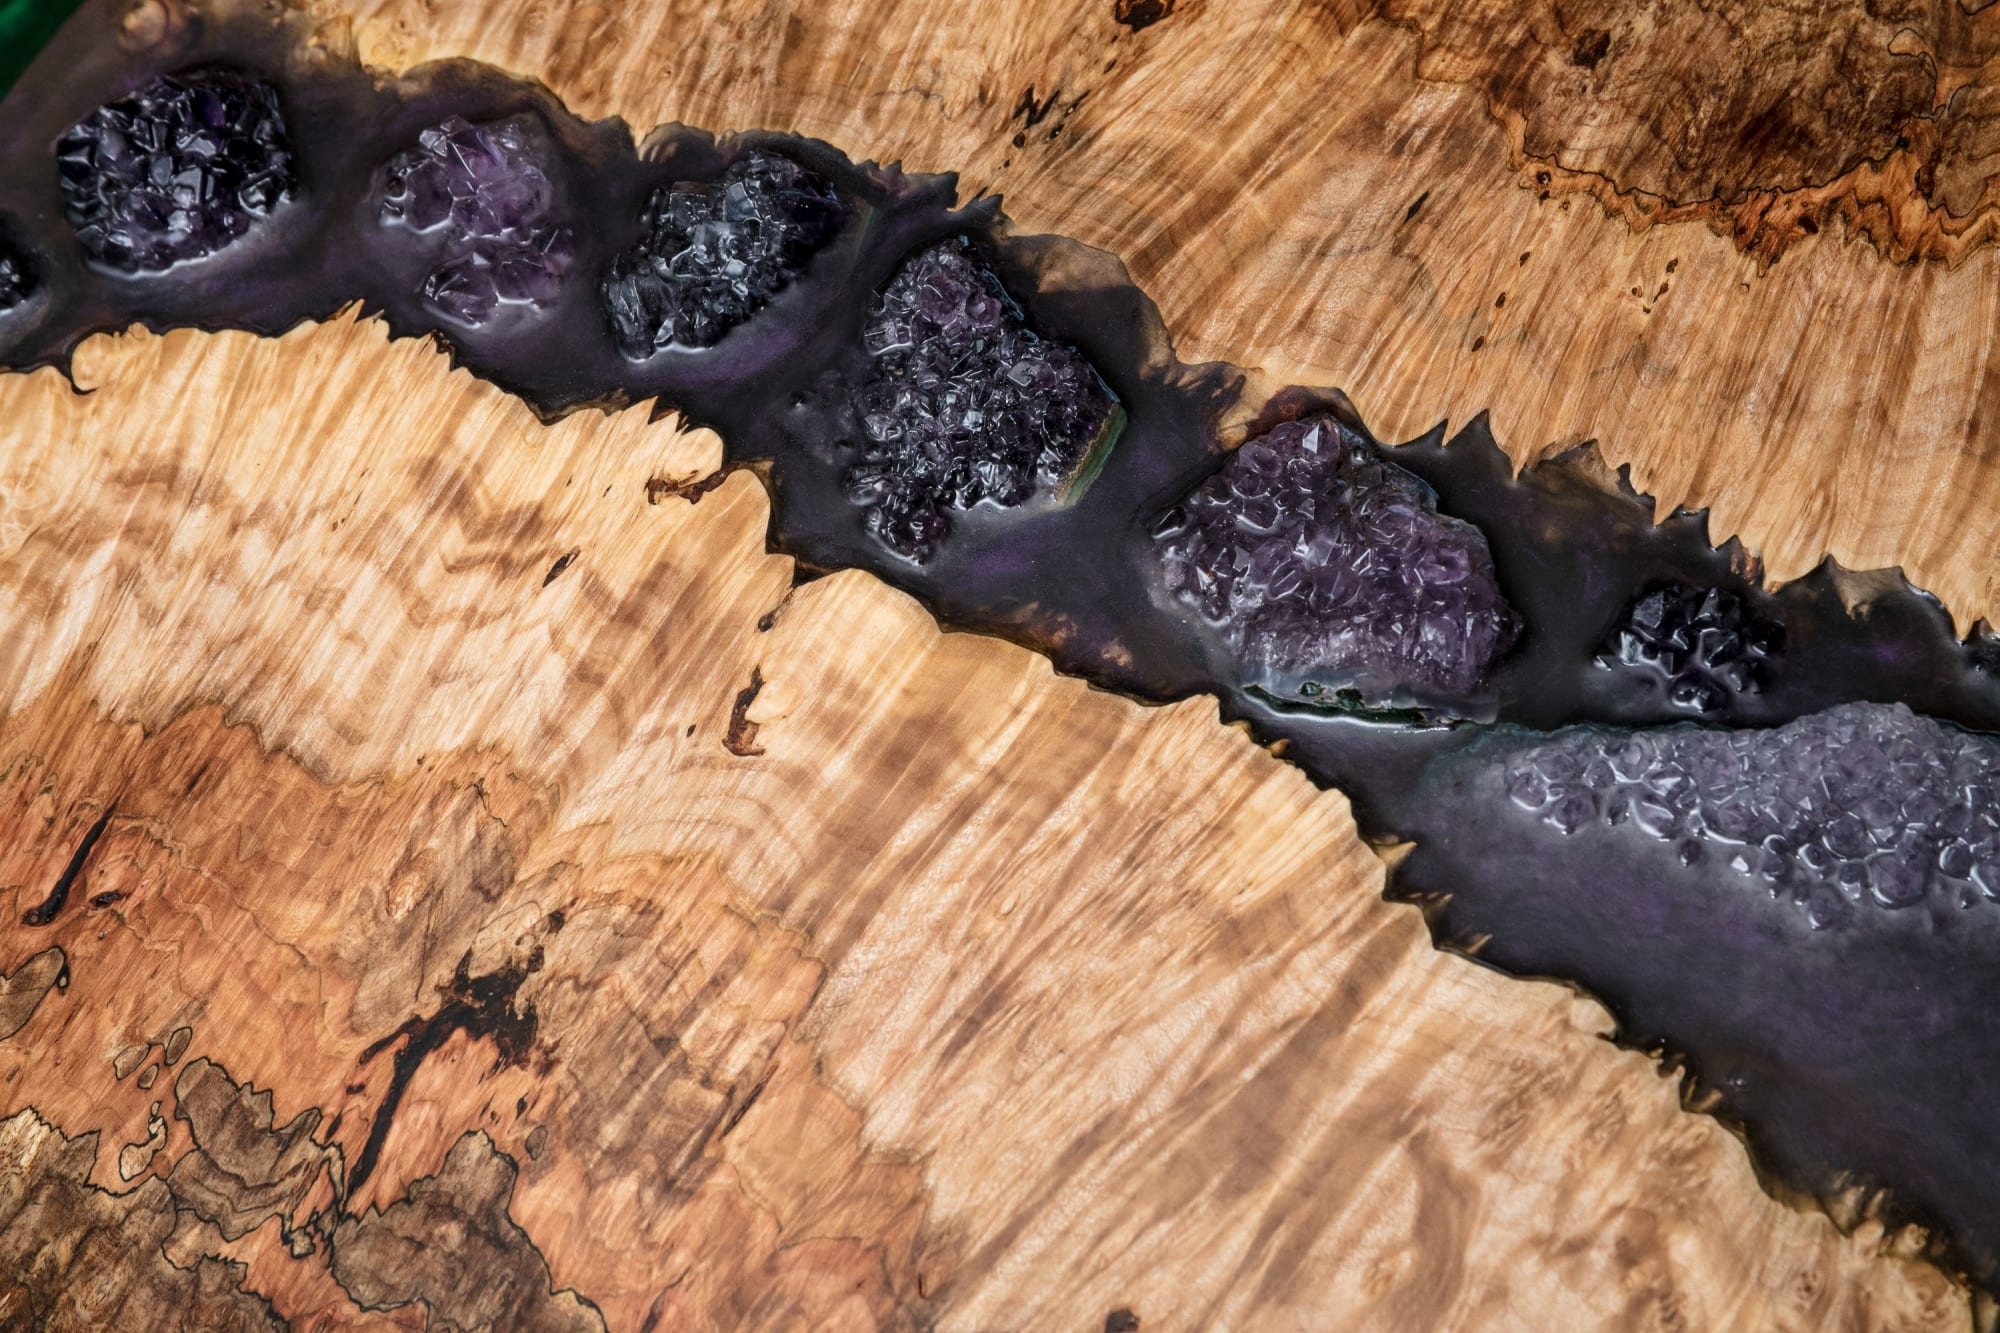 """Art & Wall Decor by Lumberlust Designs seen at Private Residence, Lubbock - Maple Burl Live Edge """"Enchanted"""" Amethyst Gem Purple Resin River 18"""" Wall Art"""